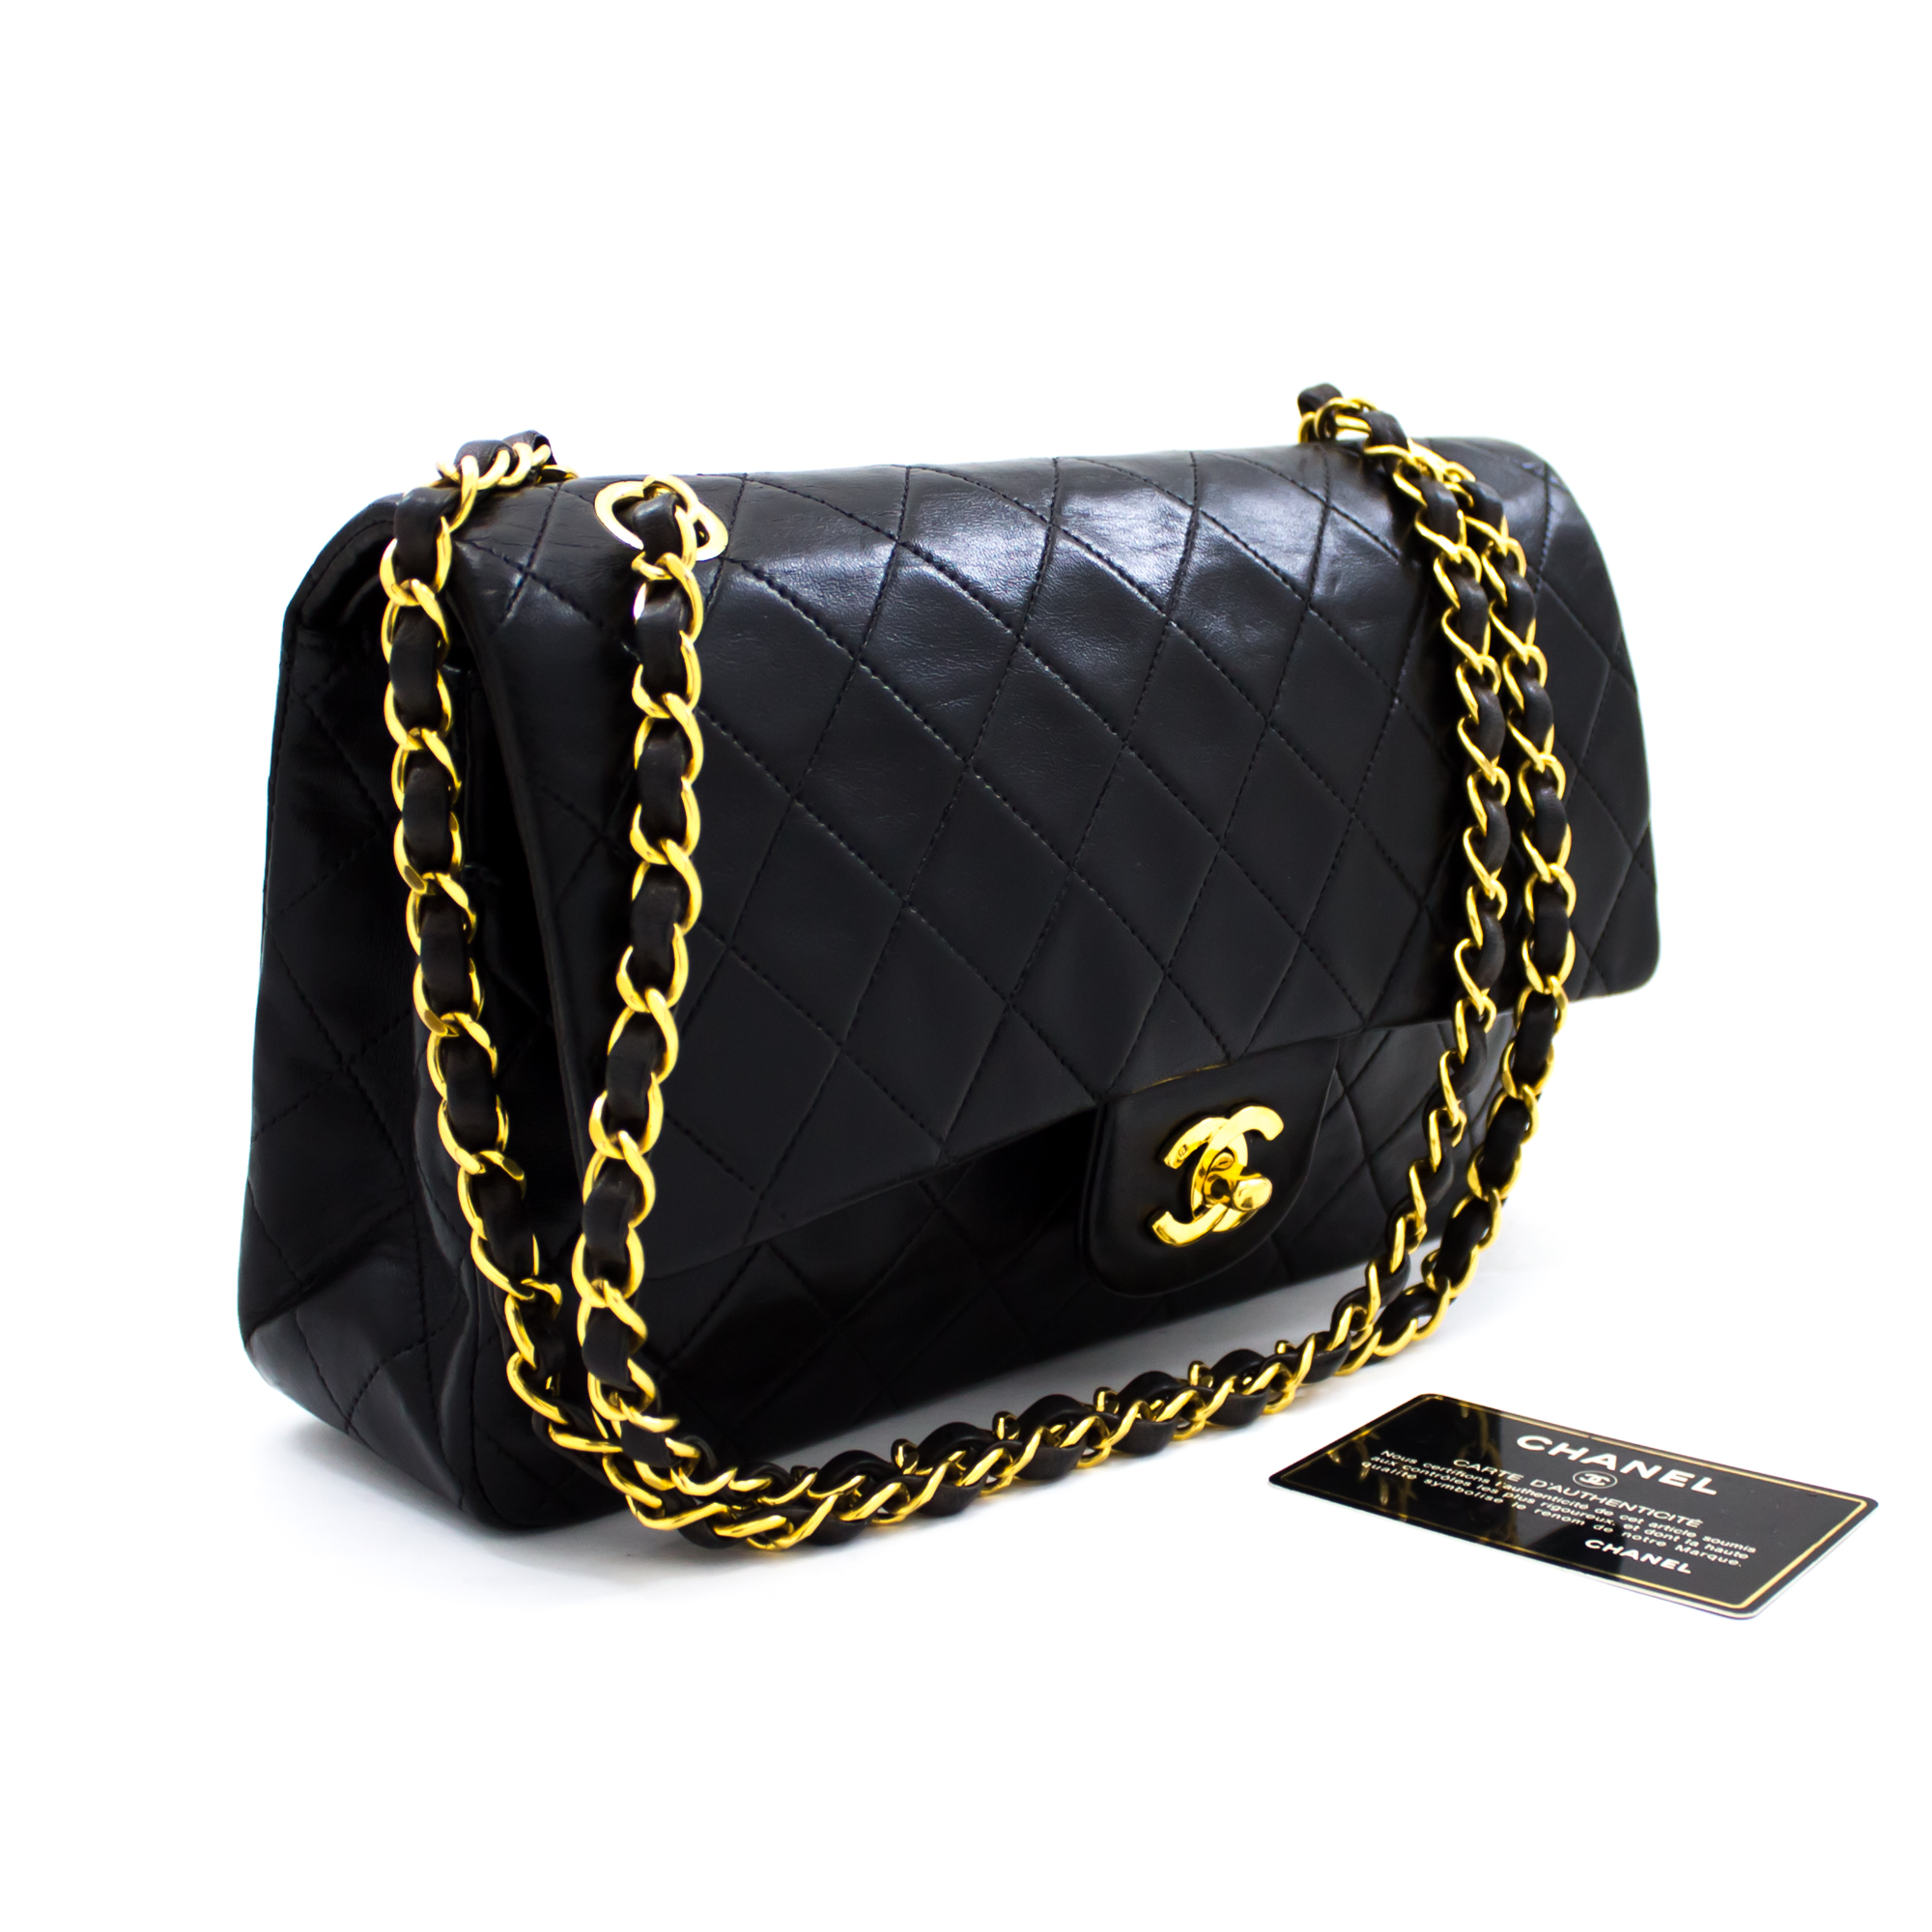 CHANEL-2-55-Double-Flap-10-034-Chain-Shoulder-Bag-Black-Quilted-Lamb-t23